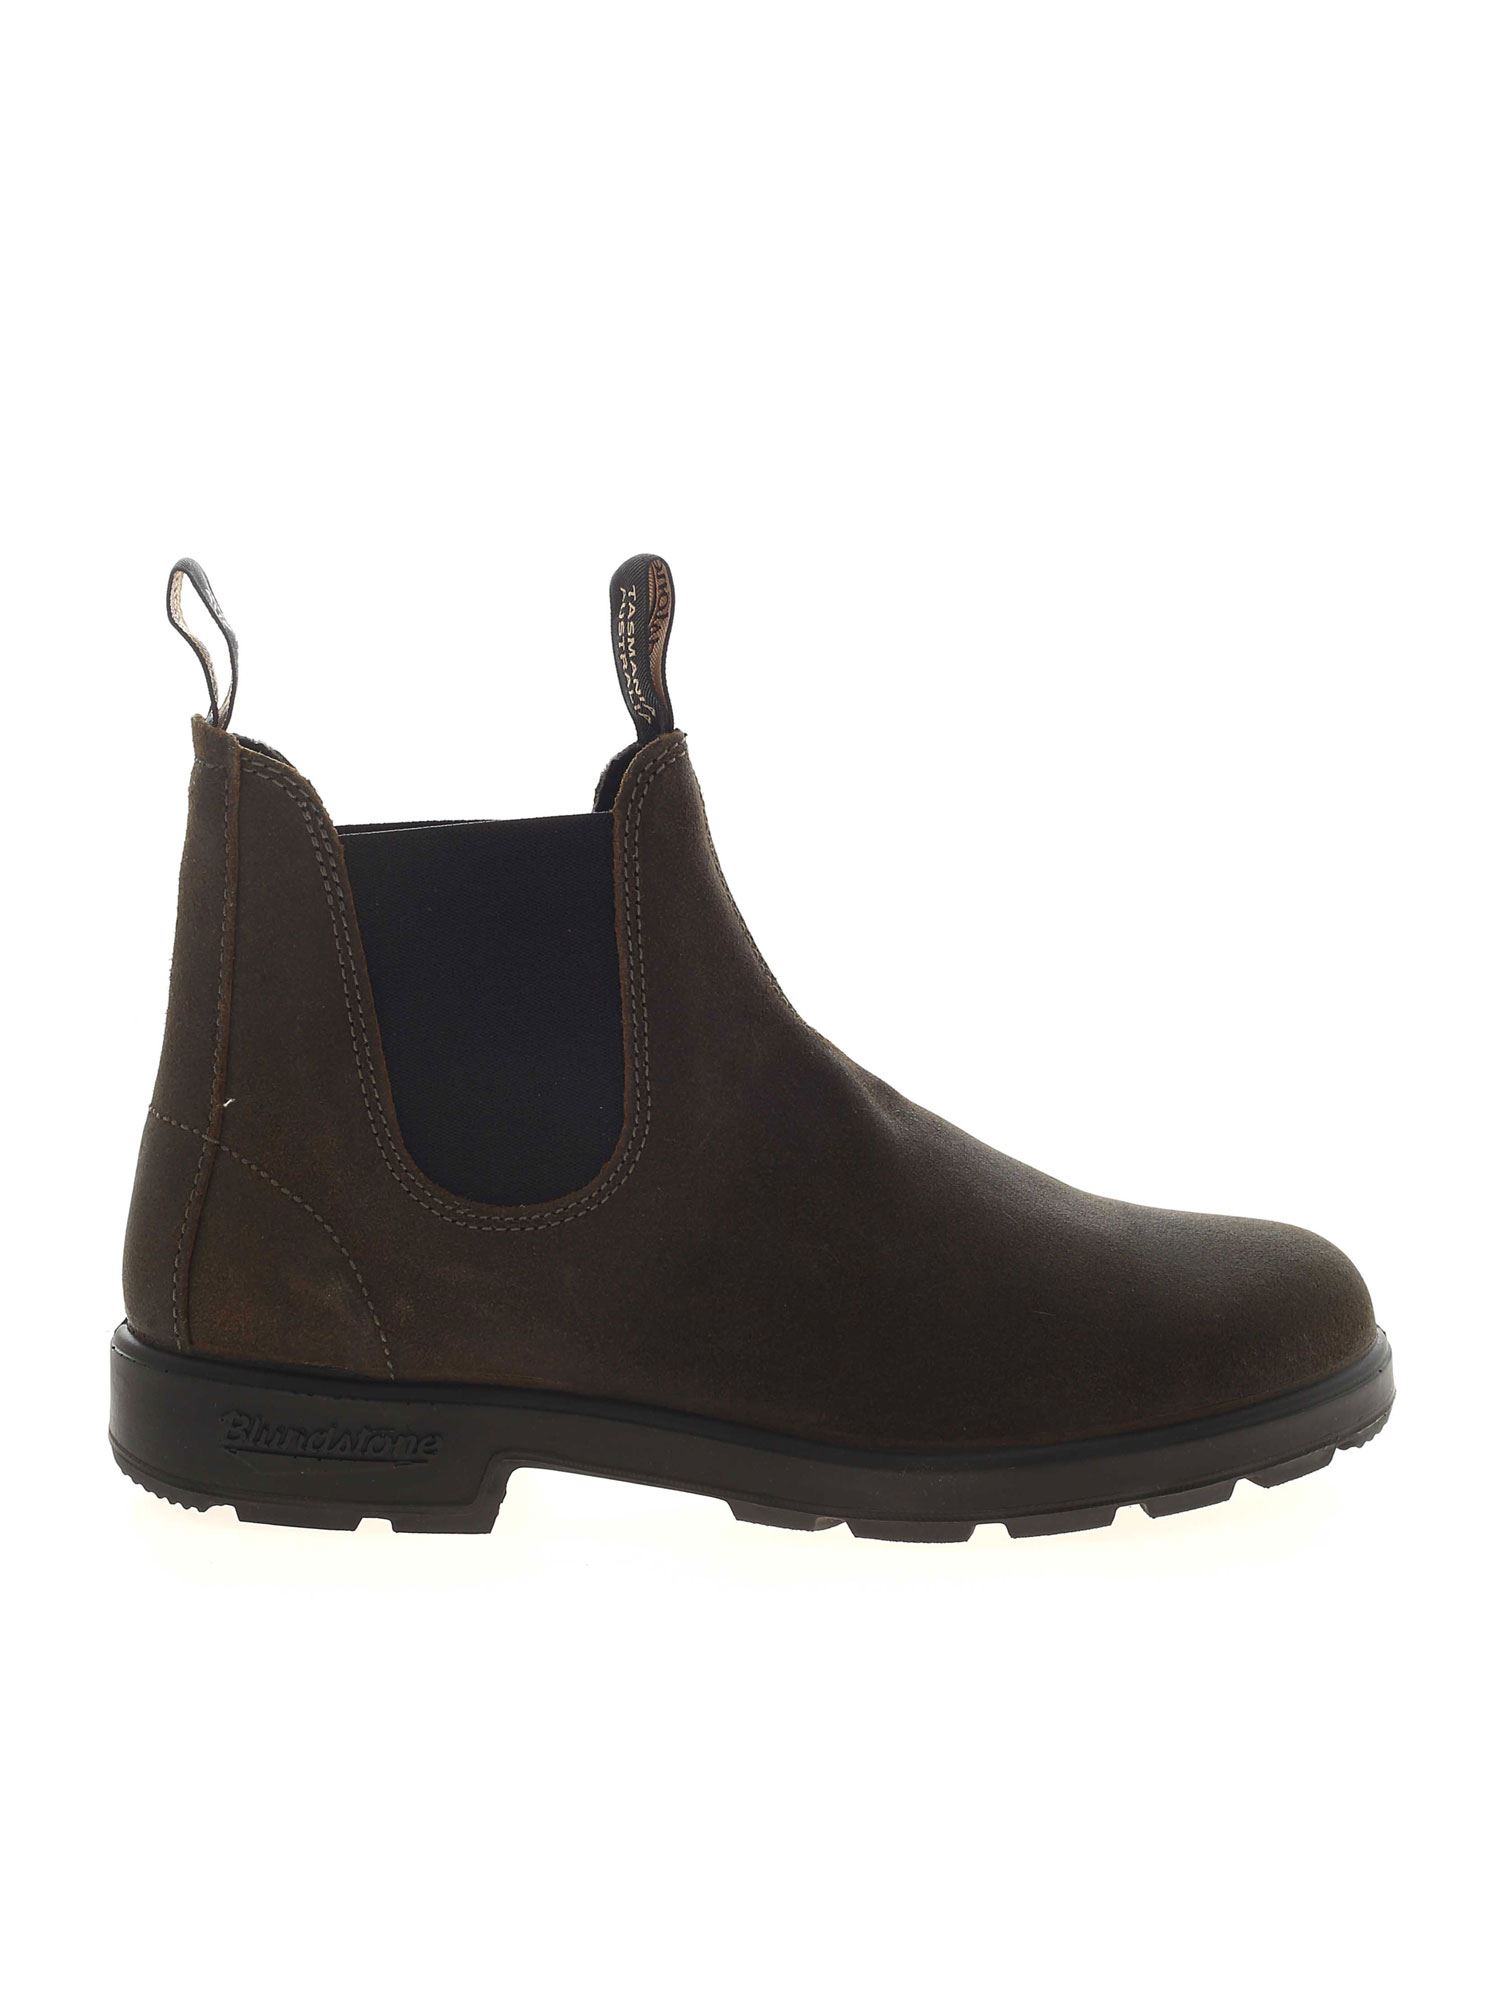 Blundstone CHELSEA GREEN ANKLE BOOTS WITH STRETCH INSERTS